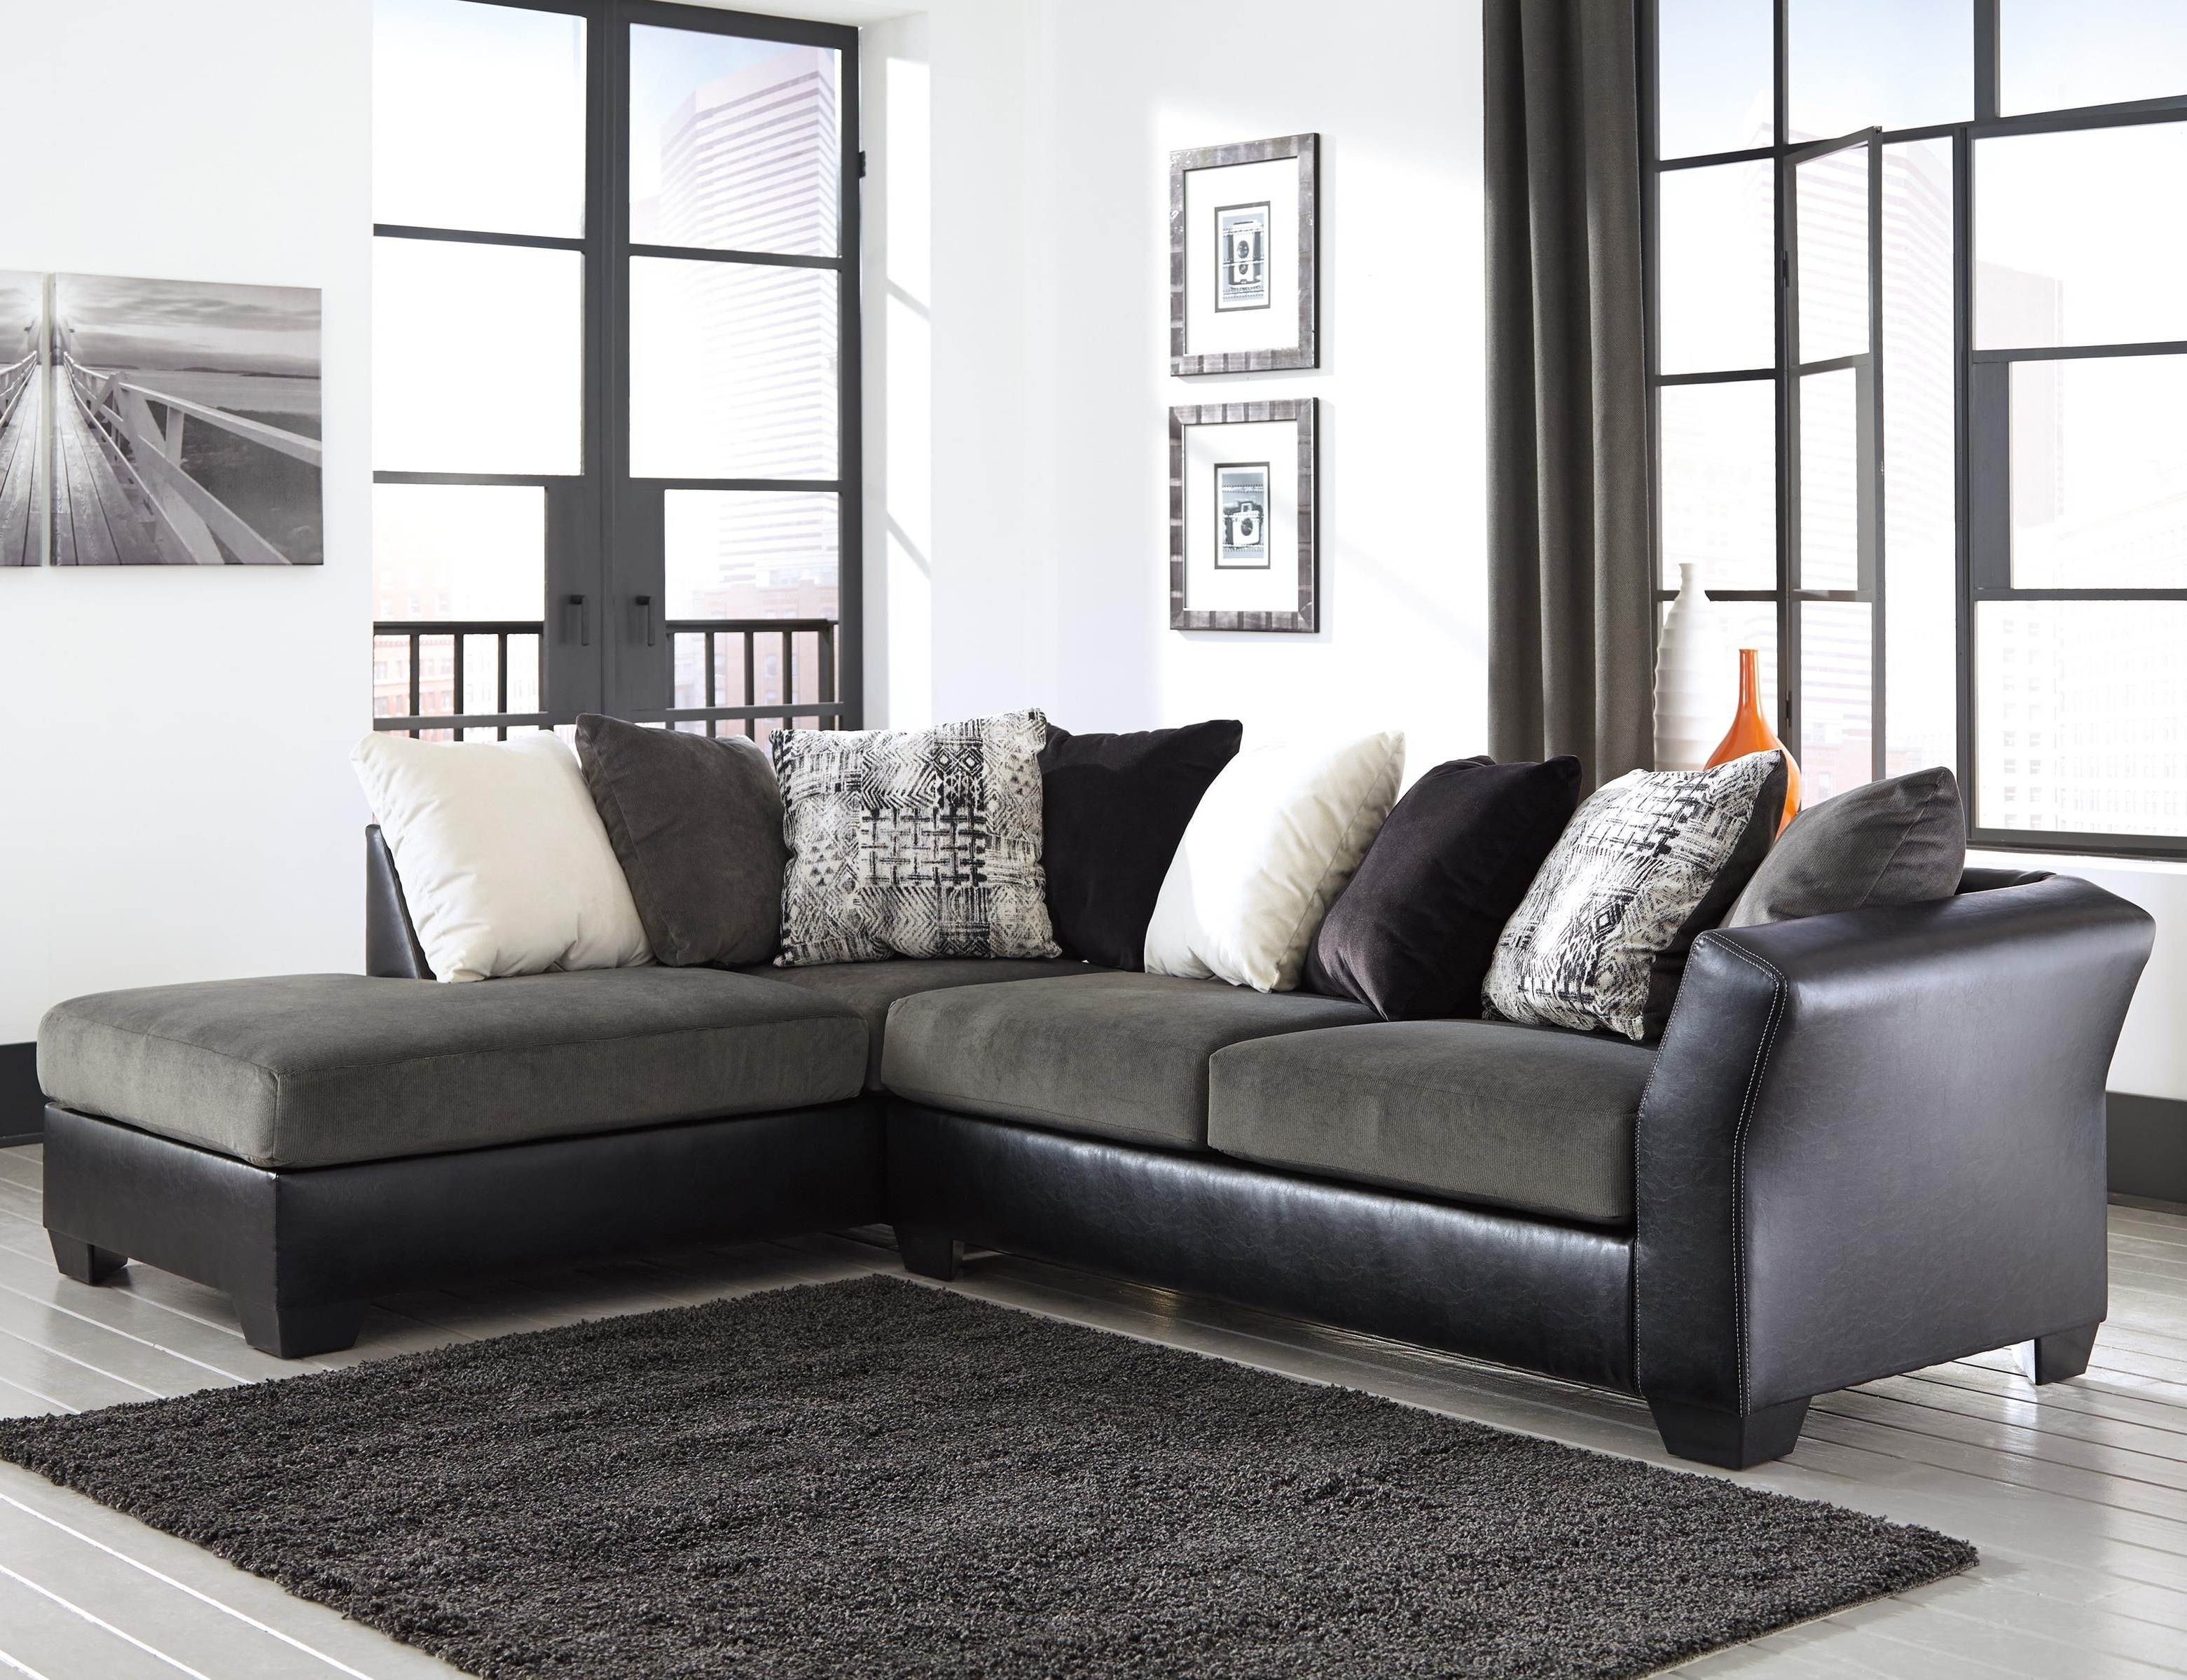 Armant 2 Piece Sectional With Right Chaisesignature Design Regarding Favorite Eau Claire Wi Sectional Sofas (View 7 of 15)